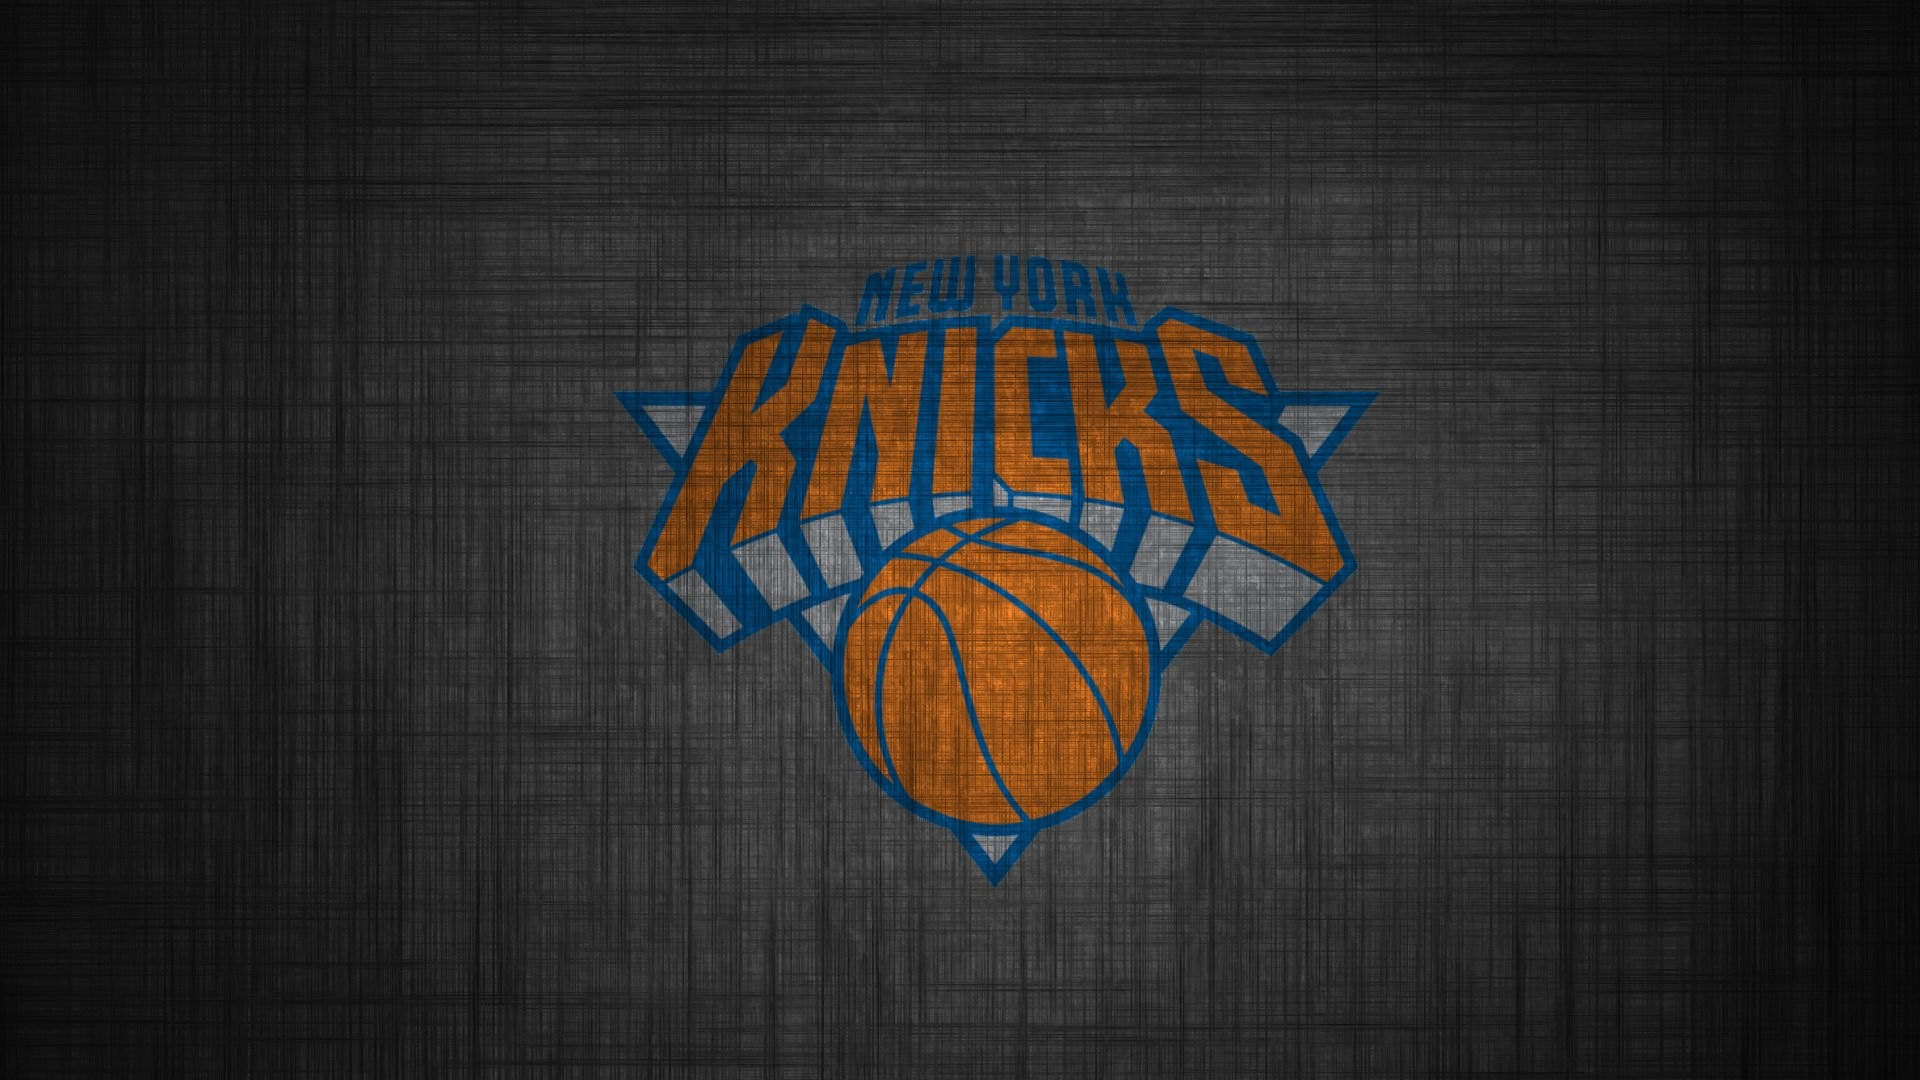 New york knicks wallpapers 1920x1080 new york knicks high quality wallpapers voltagebd Image collections